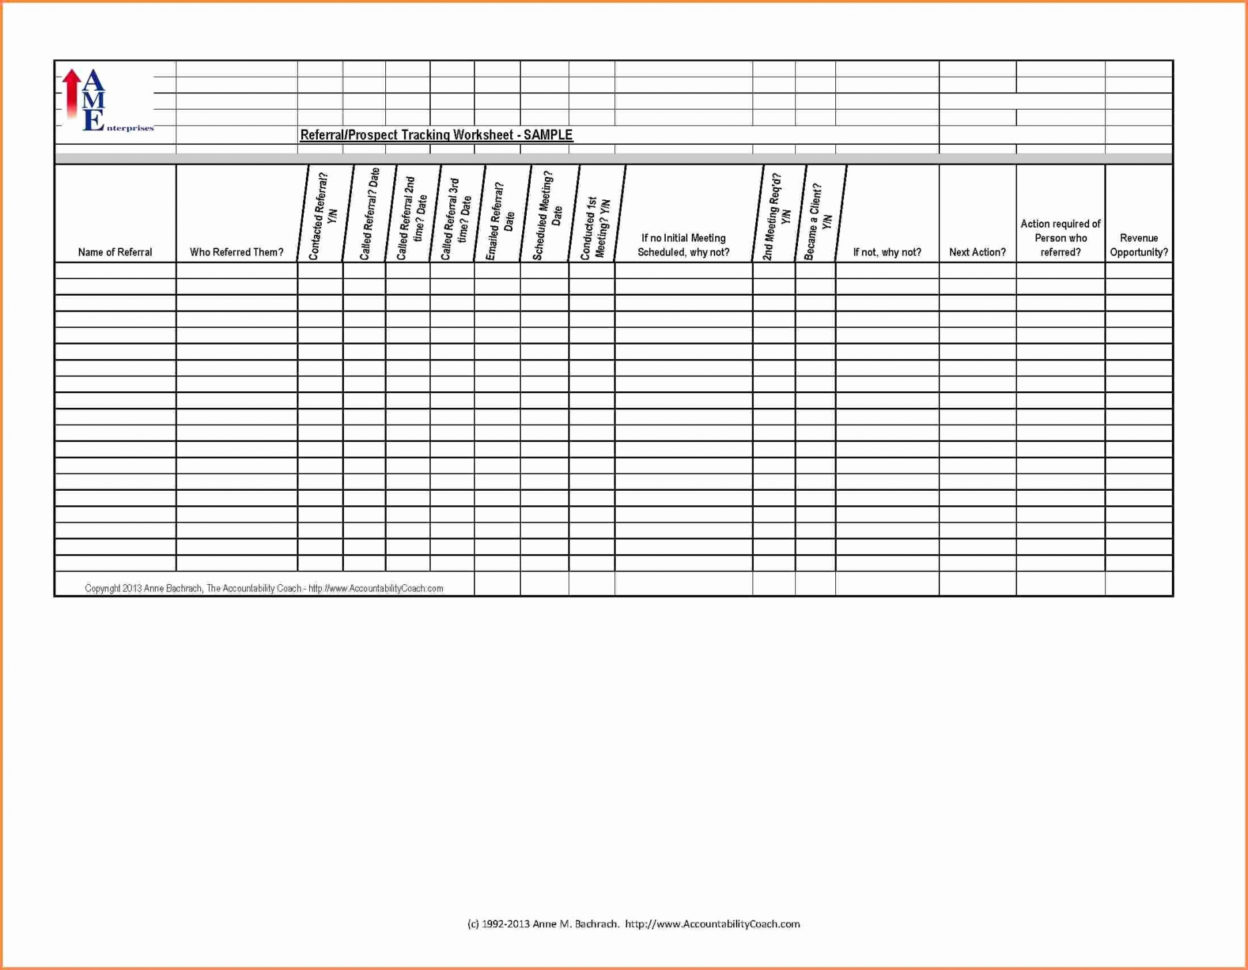 Rent Payment Excel Spreadsheet With Regard To Rent Payment Tracker Spreadsheet Order Of Gallery Of Rent Payment